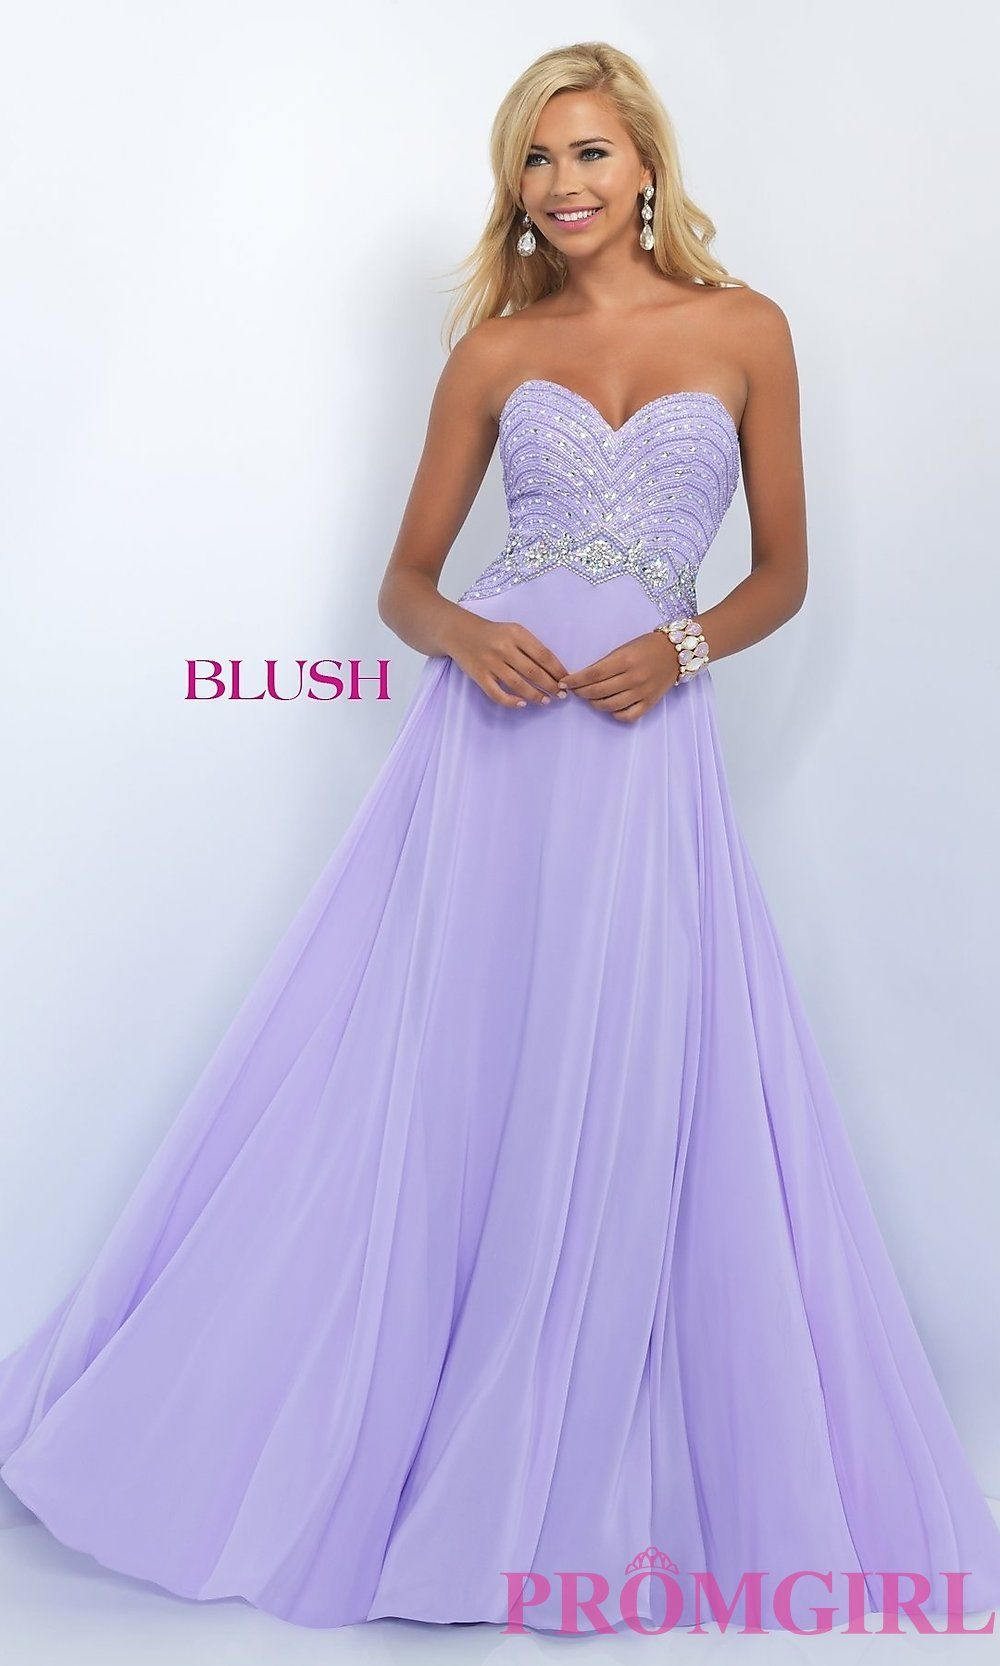 To acquire Prom lilac dress strapless picture trends